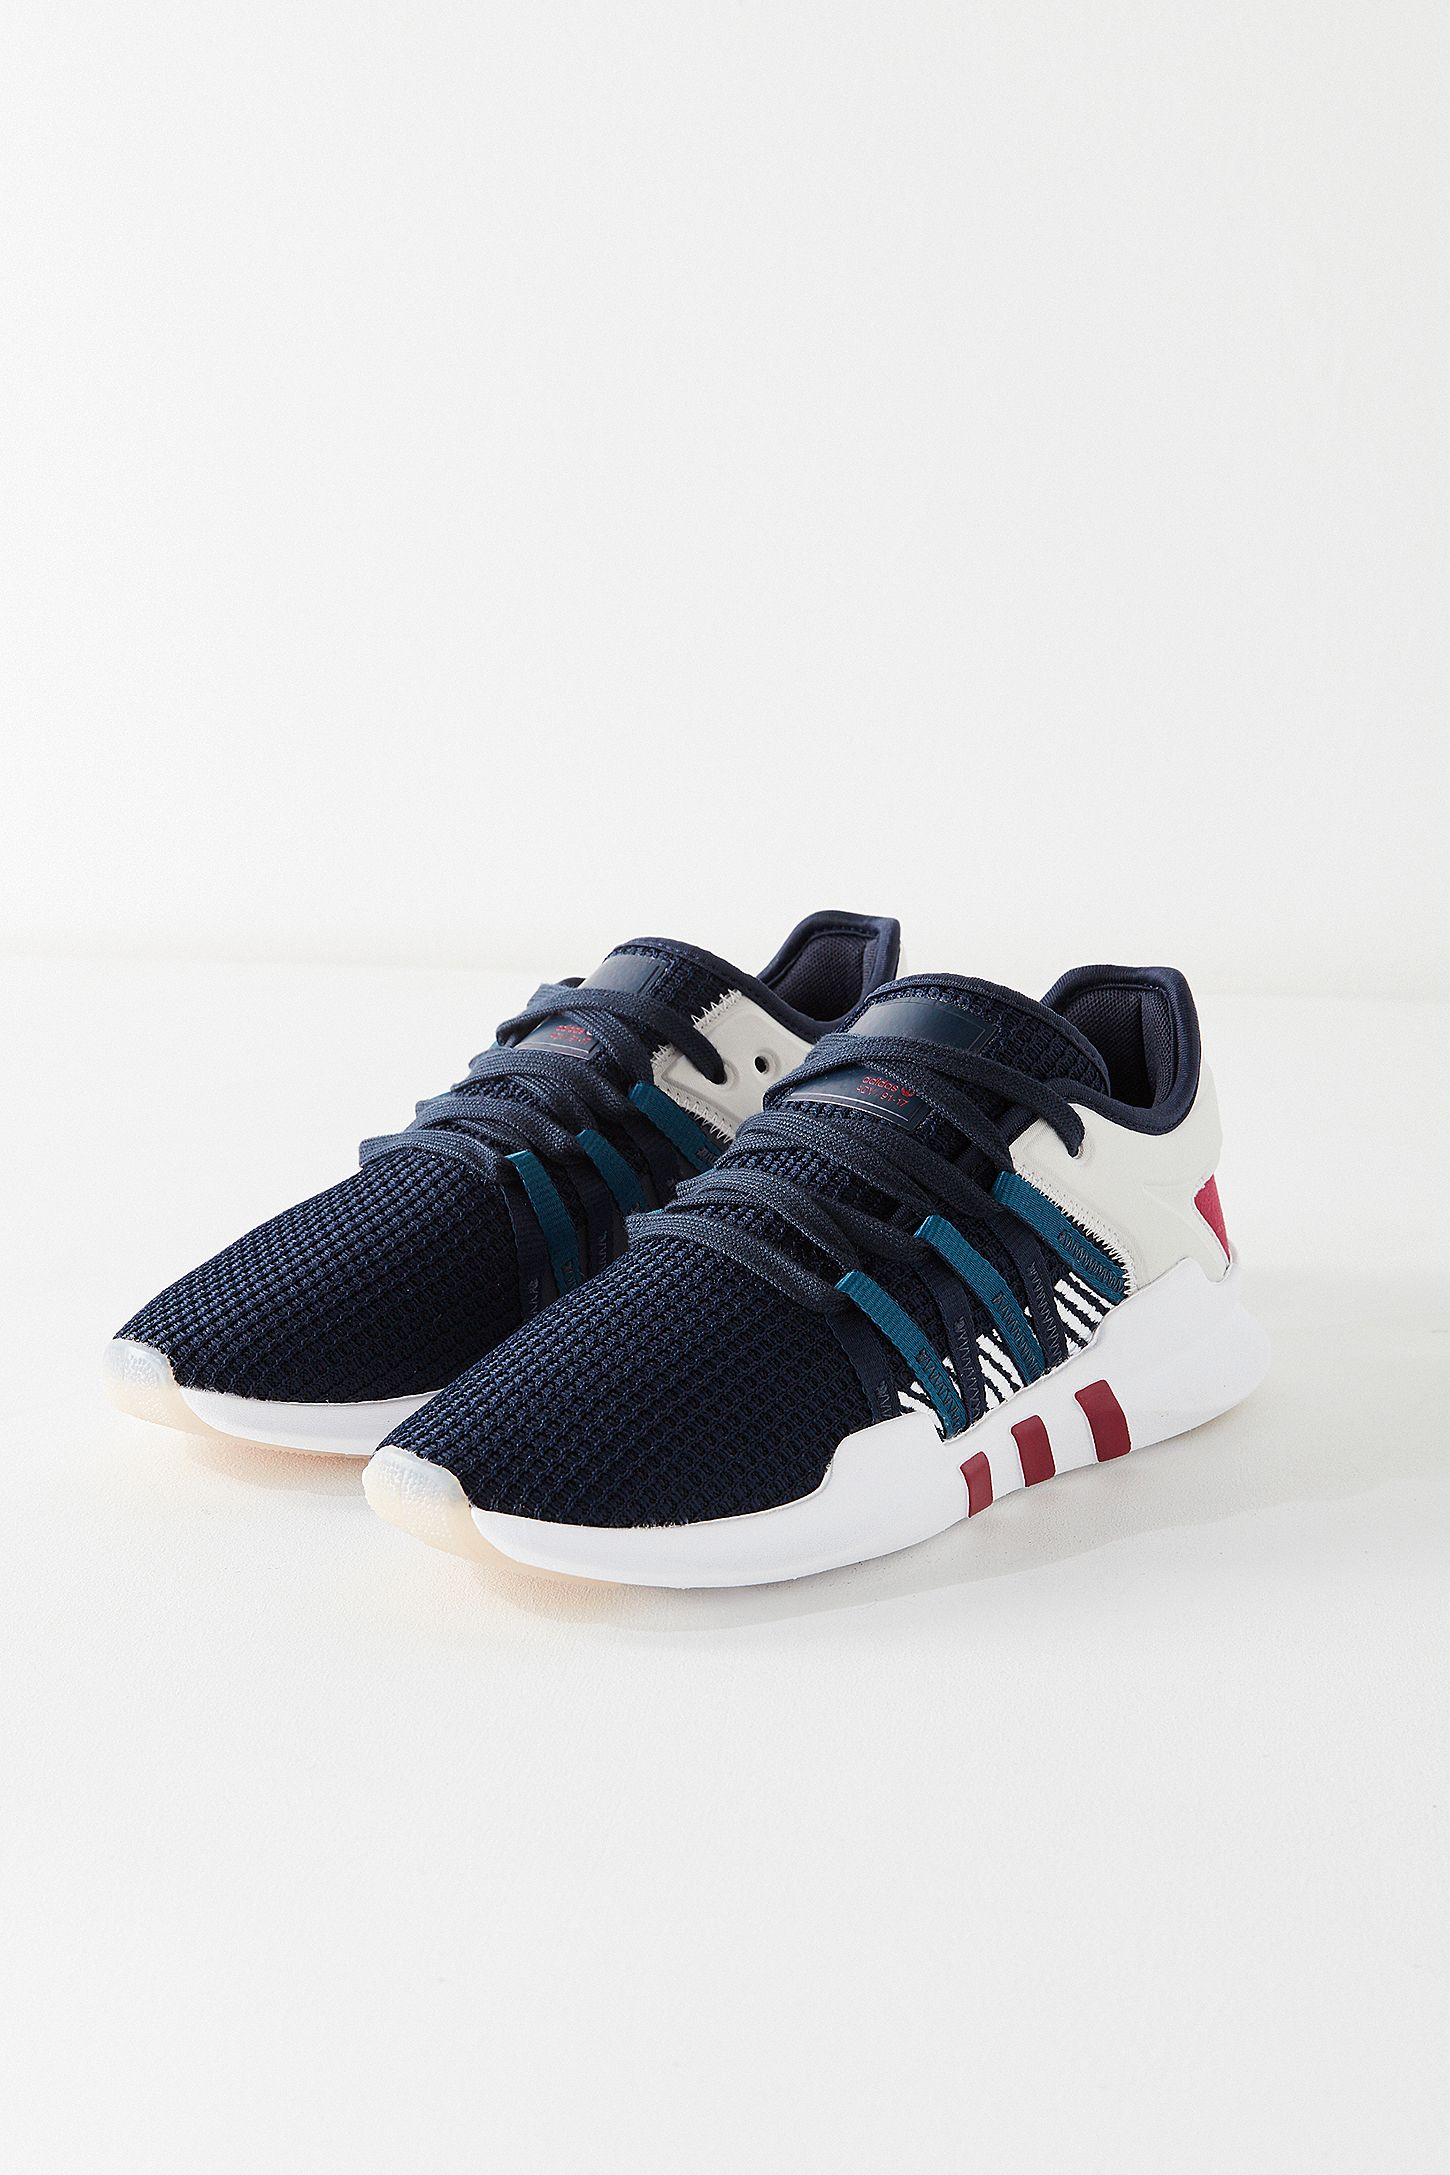 9e16b2bfab0c adidas Originals EQT Racing ADV Trainers